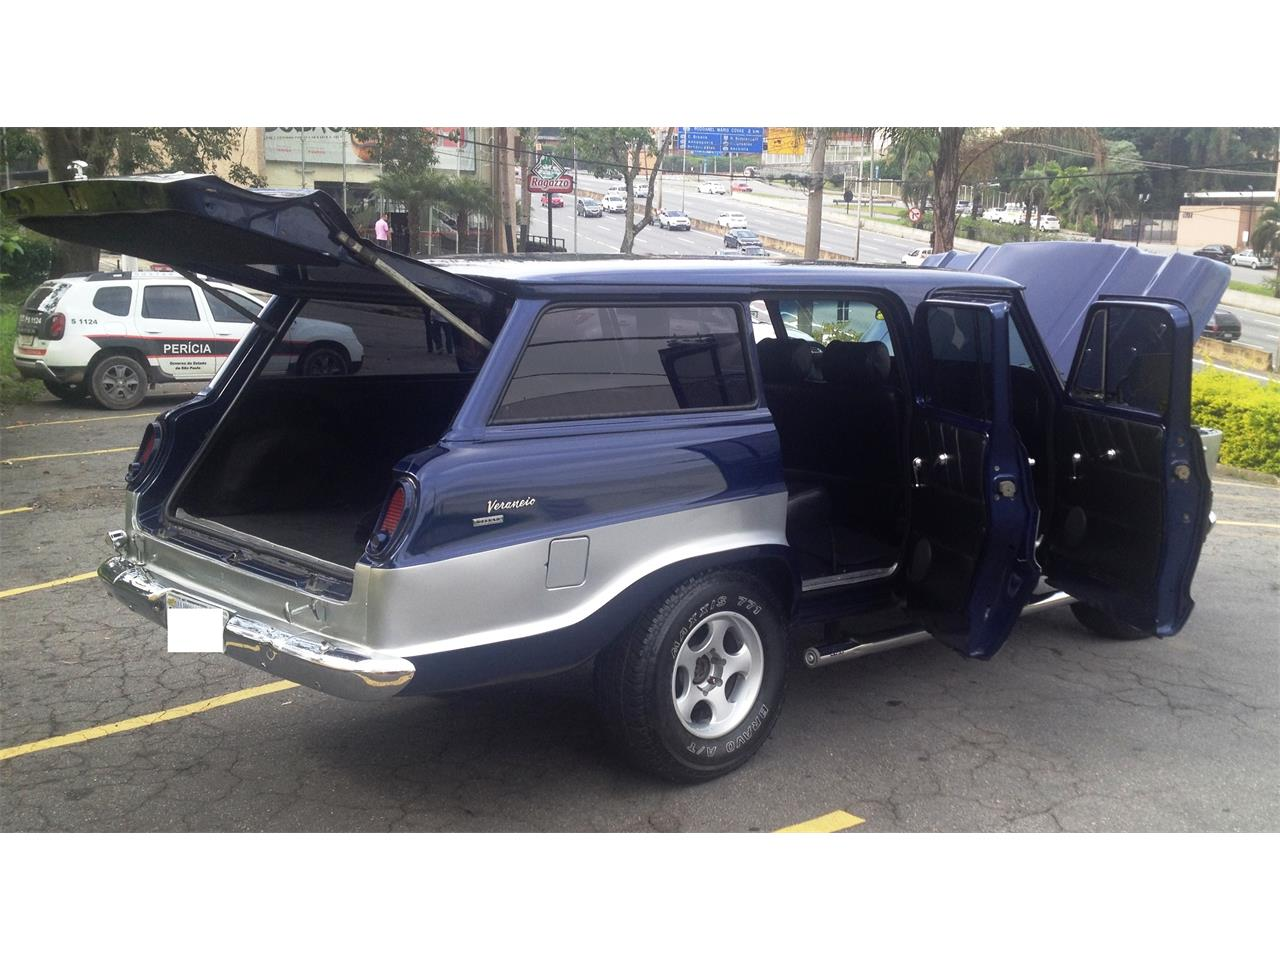 Large Picture of '85 SUV located in São Paulo São Paulo - $39,900.00 Offered by a Private Seller - KMSF